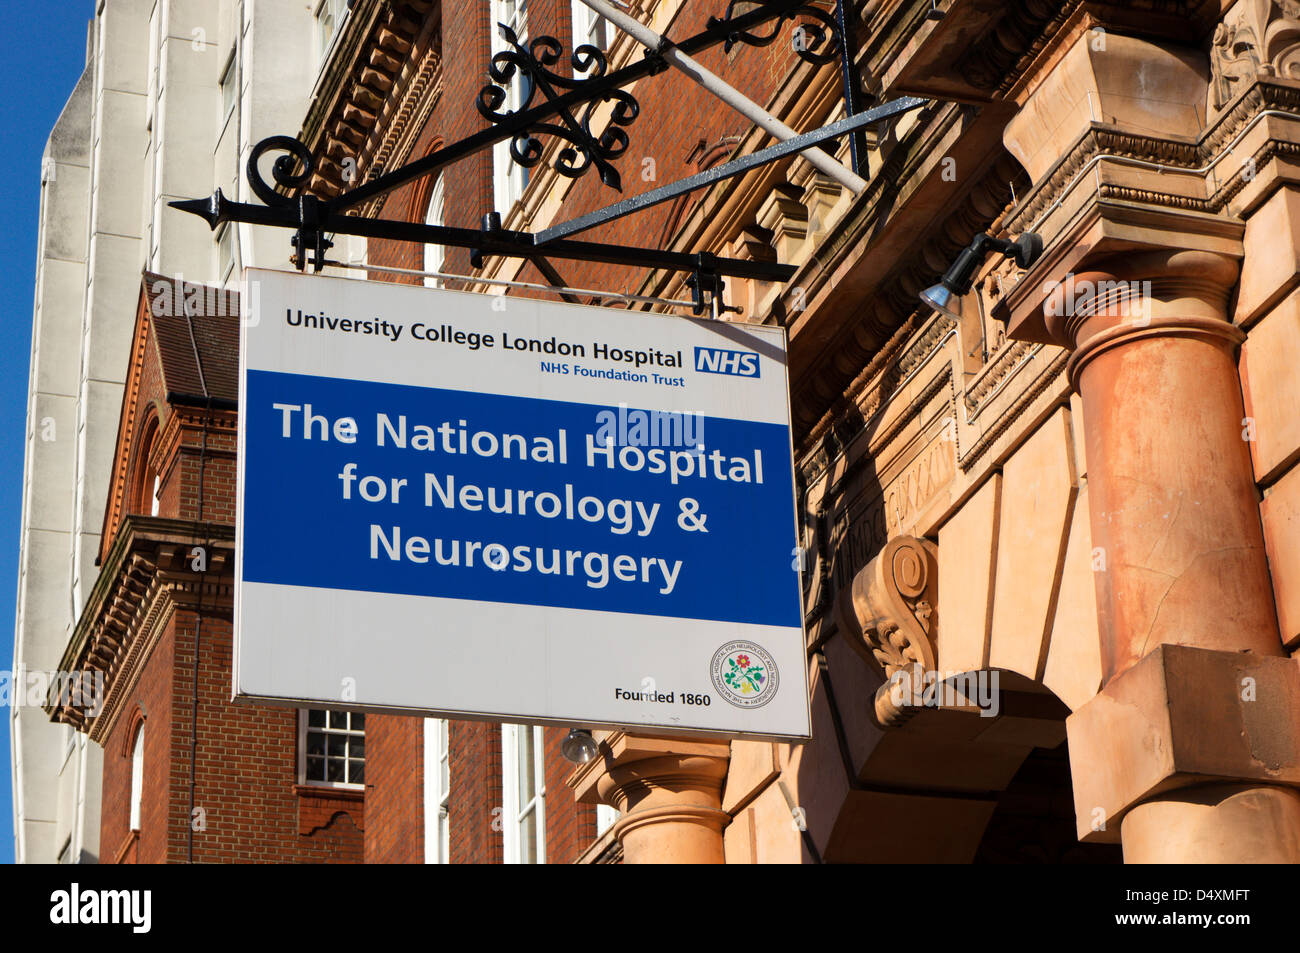 Sign for 'The National Hospital for Neurology & Neurosurgery', part of University College London Hospital in Queen Square Stock Photo - Alamy